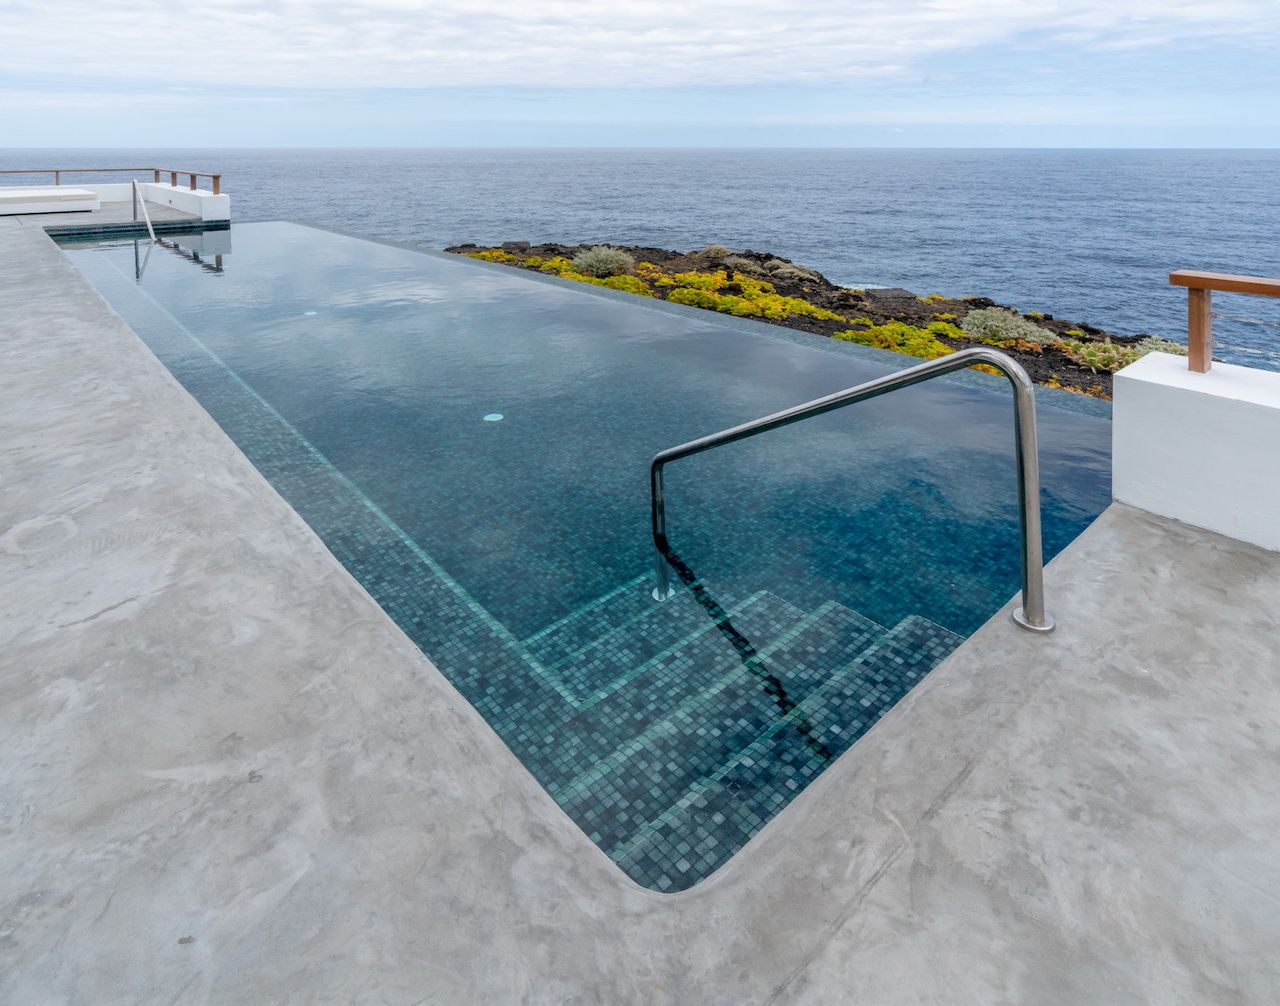 Pool at the luxury Canary Islands lighthouse hotel